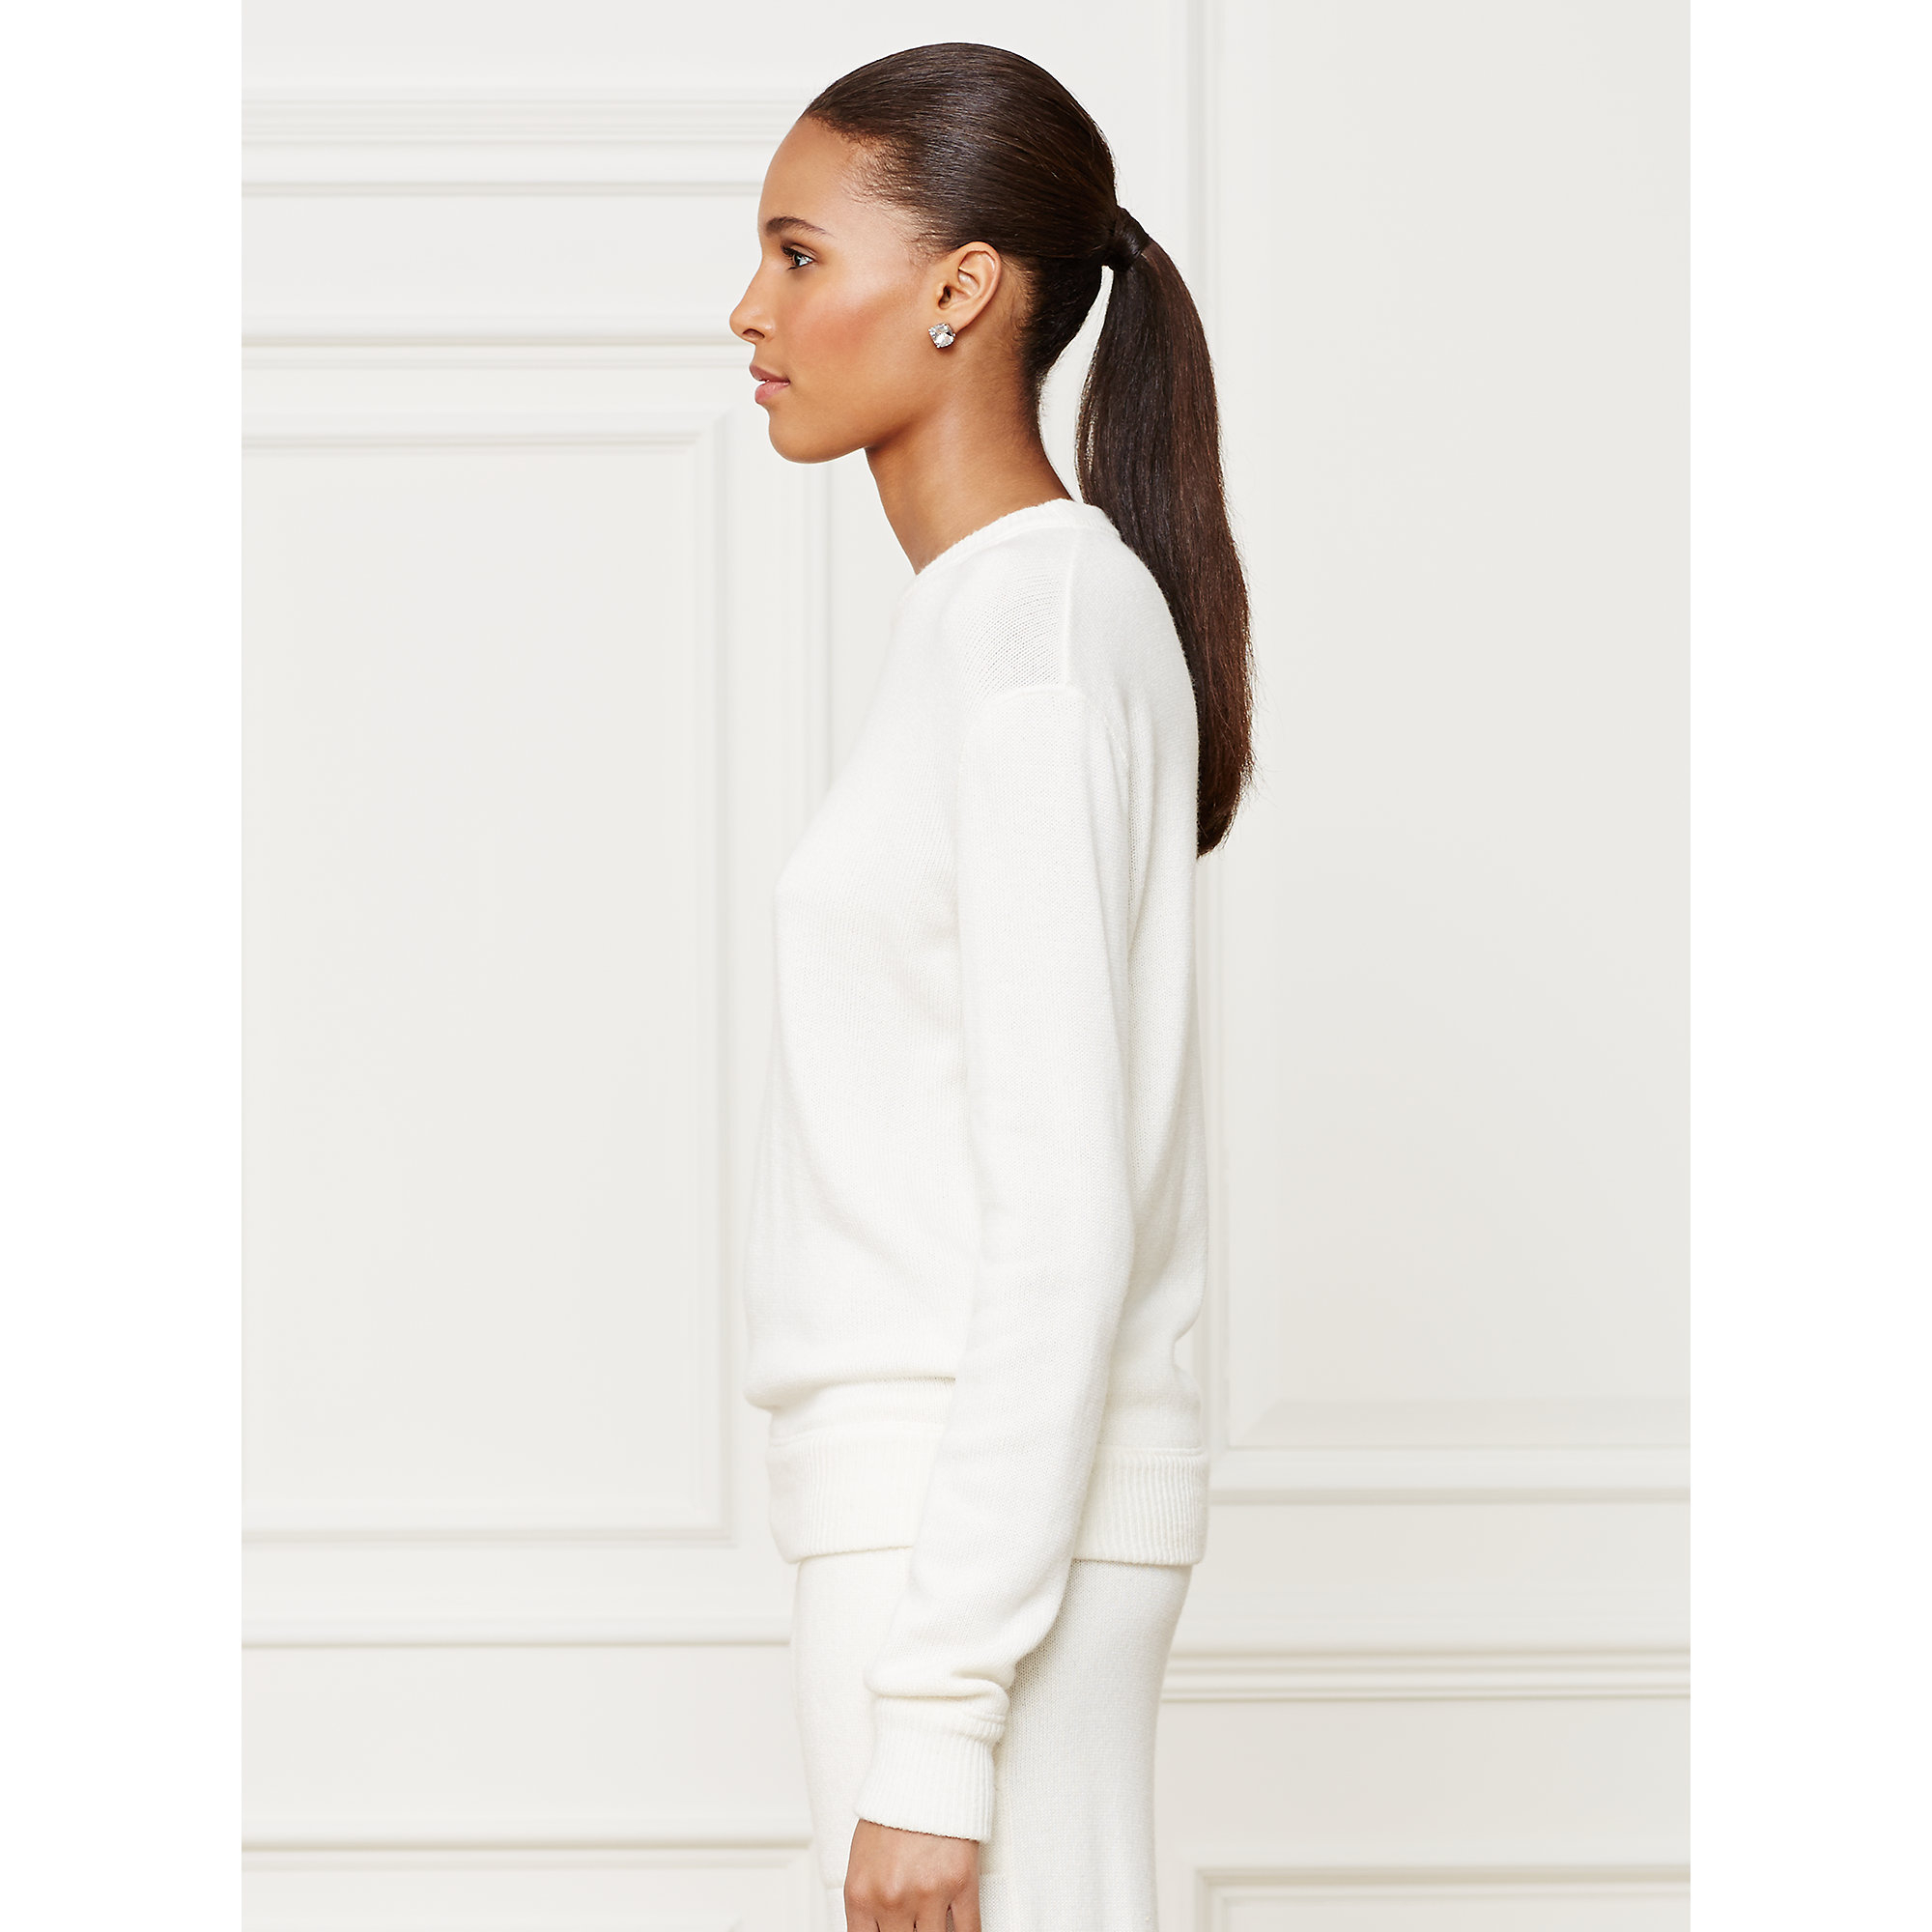 Ralph lauren collection Cashmere Crewneck Sweater in White | Lyst